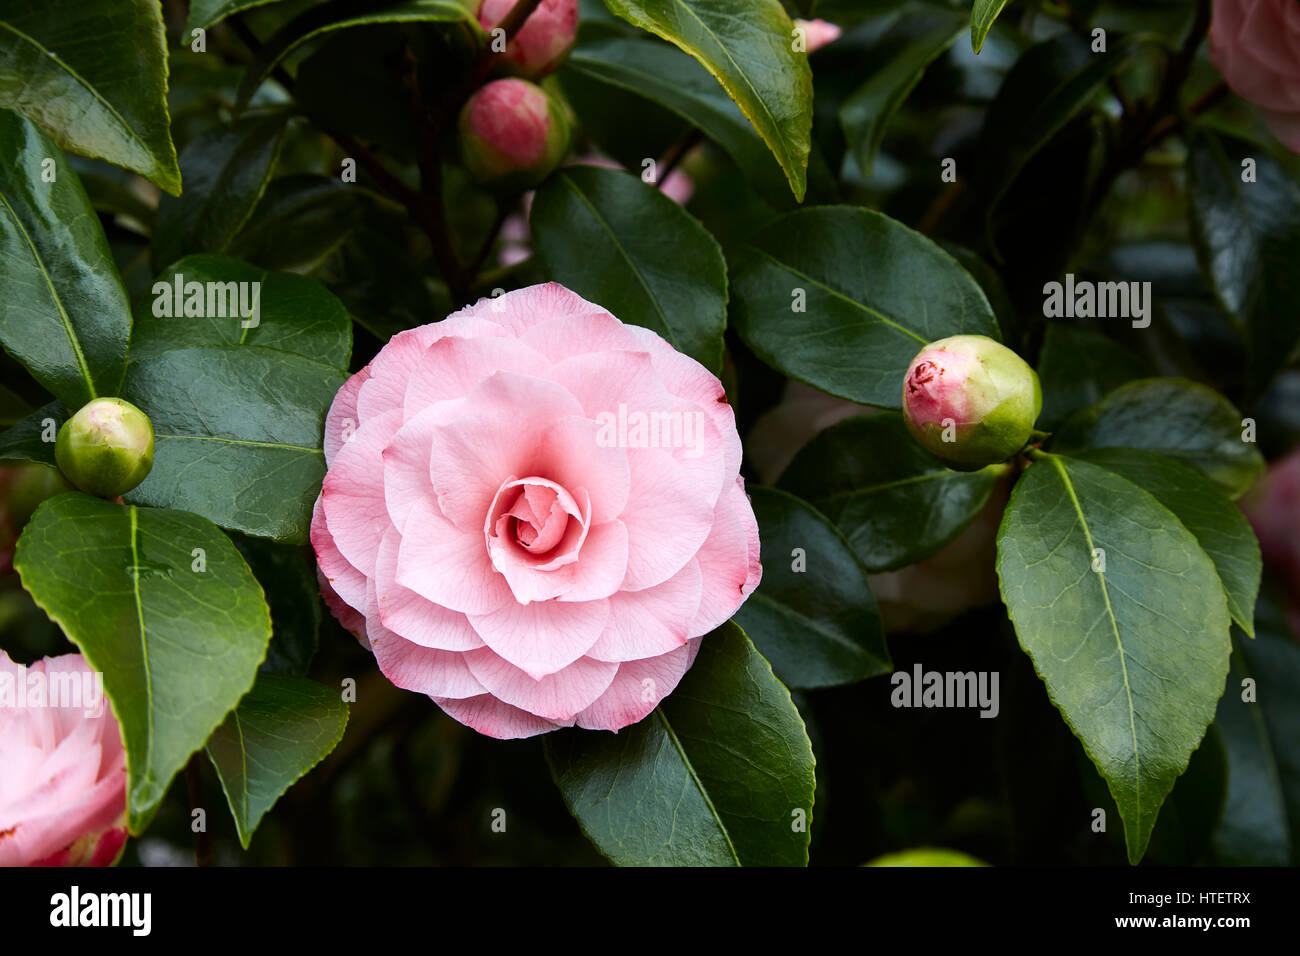 A Double Pink Camellia Flower With Unopened Buds Stock Photo